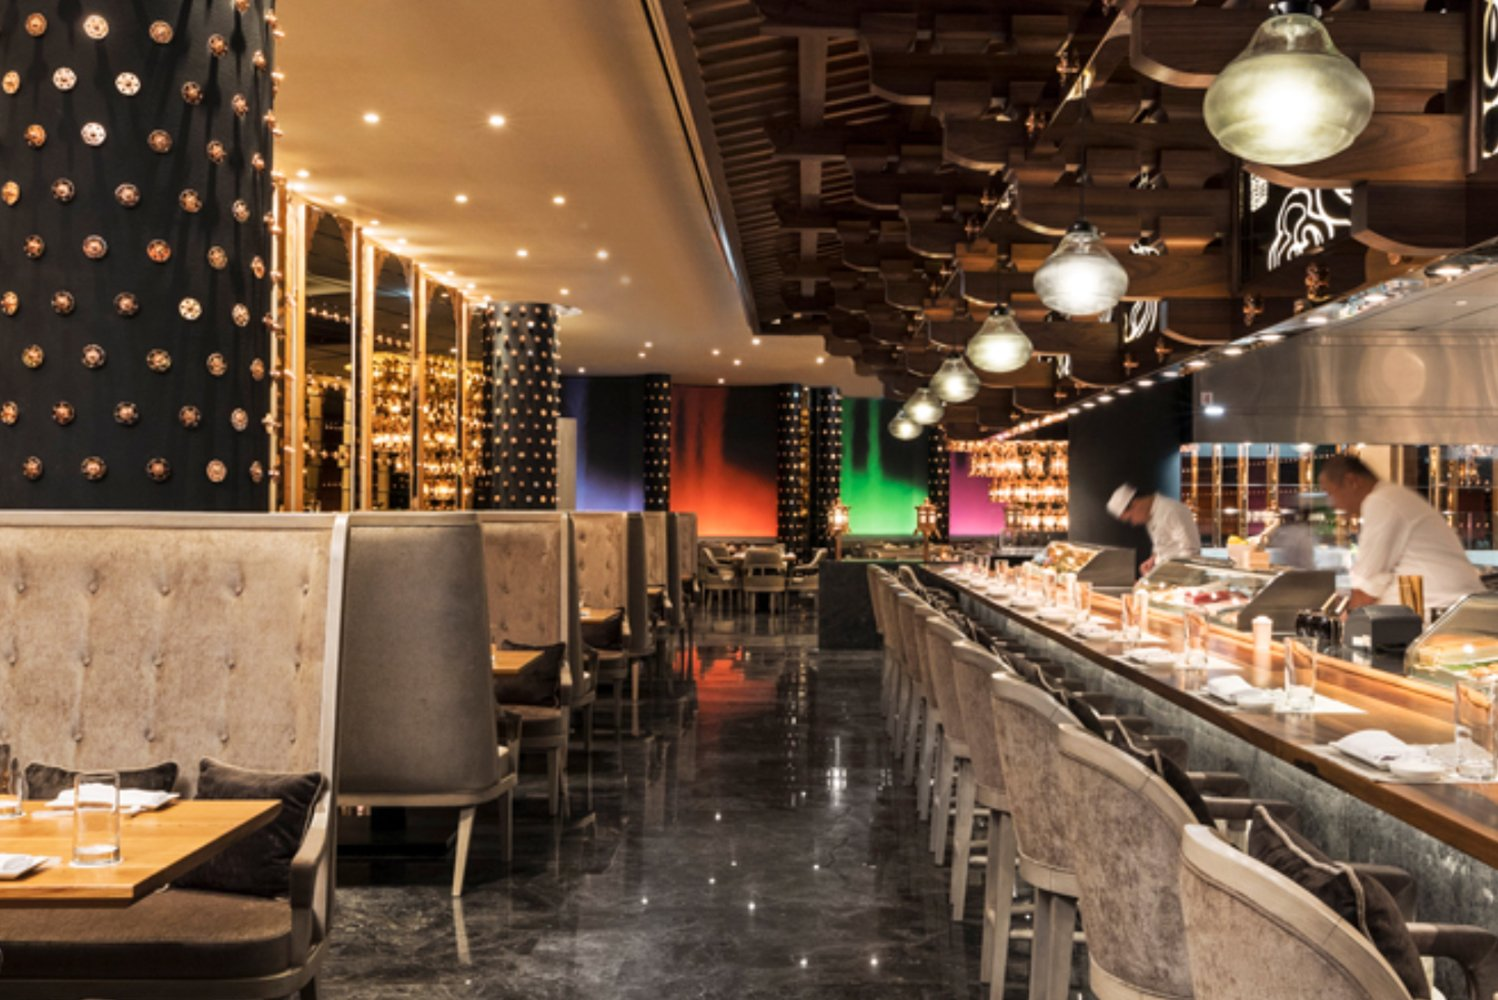 For dining, Mondrian Doha has seven restaurants and bars.